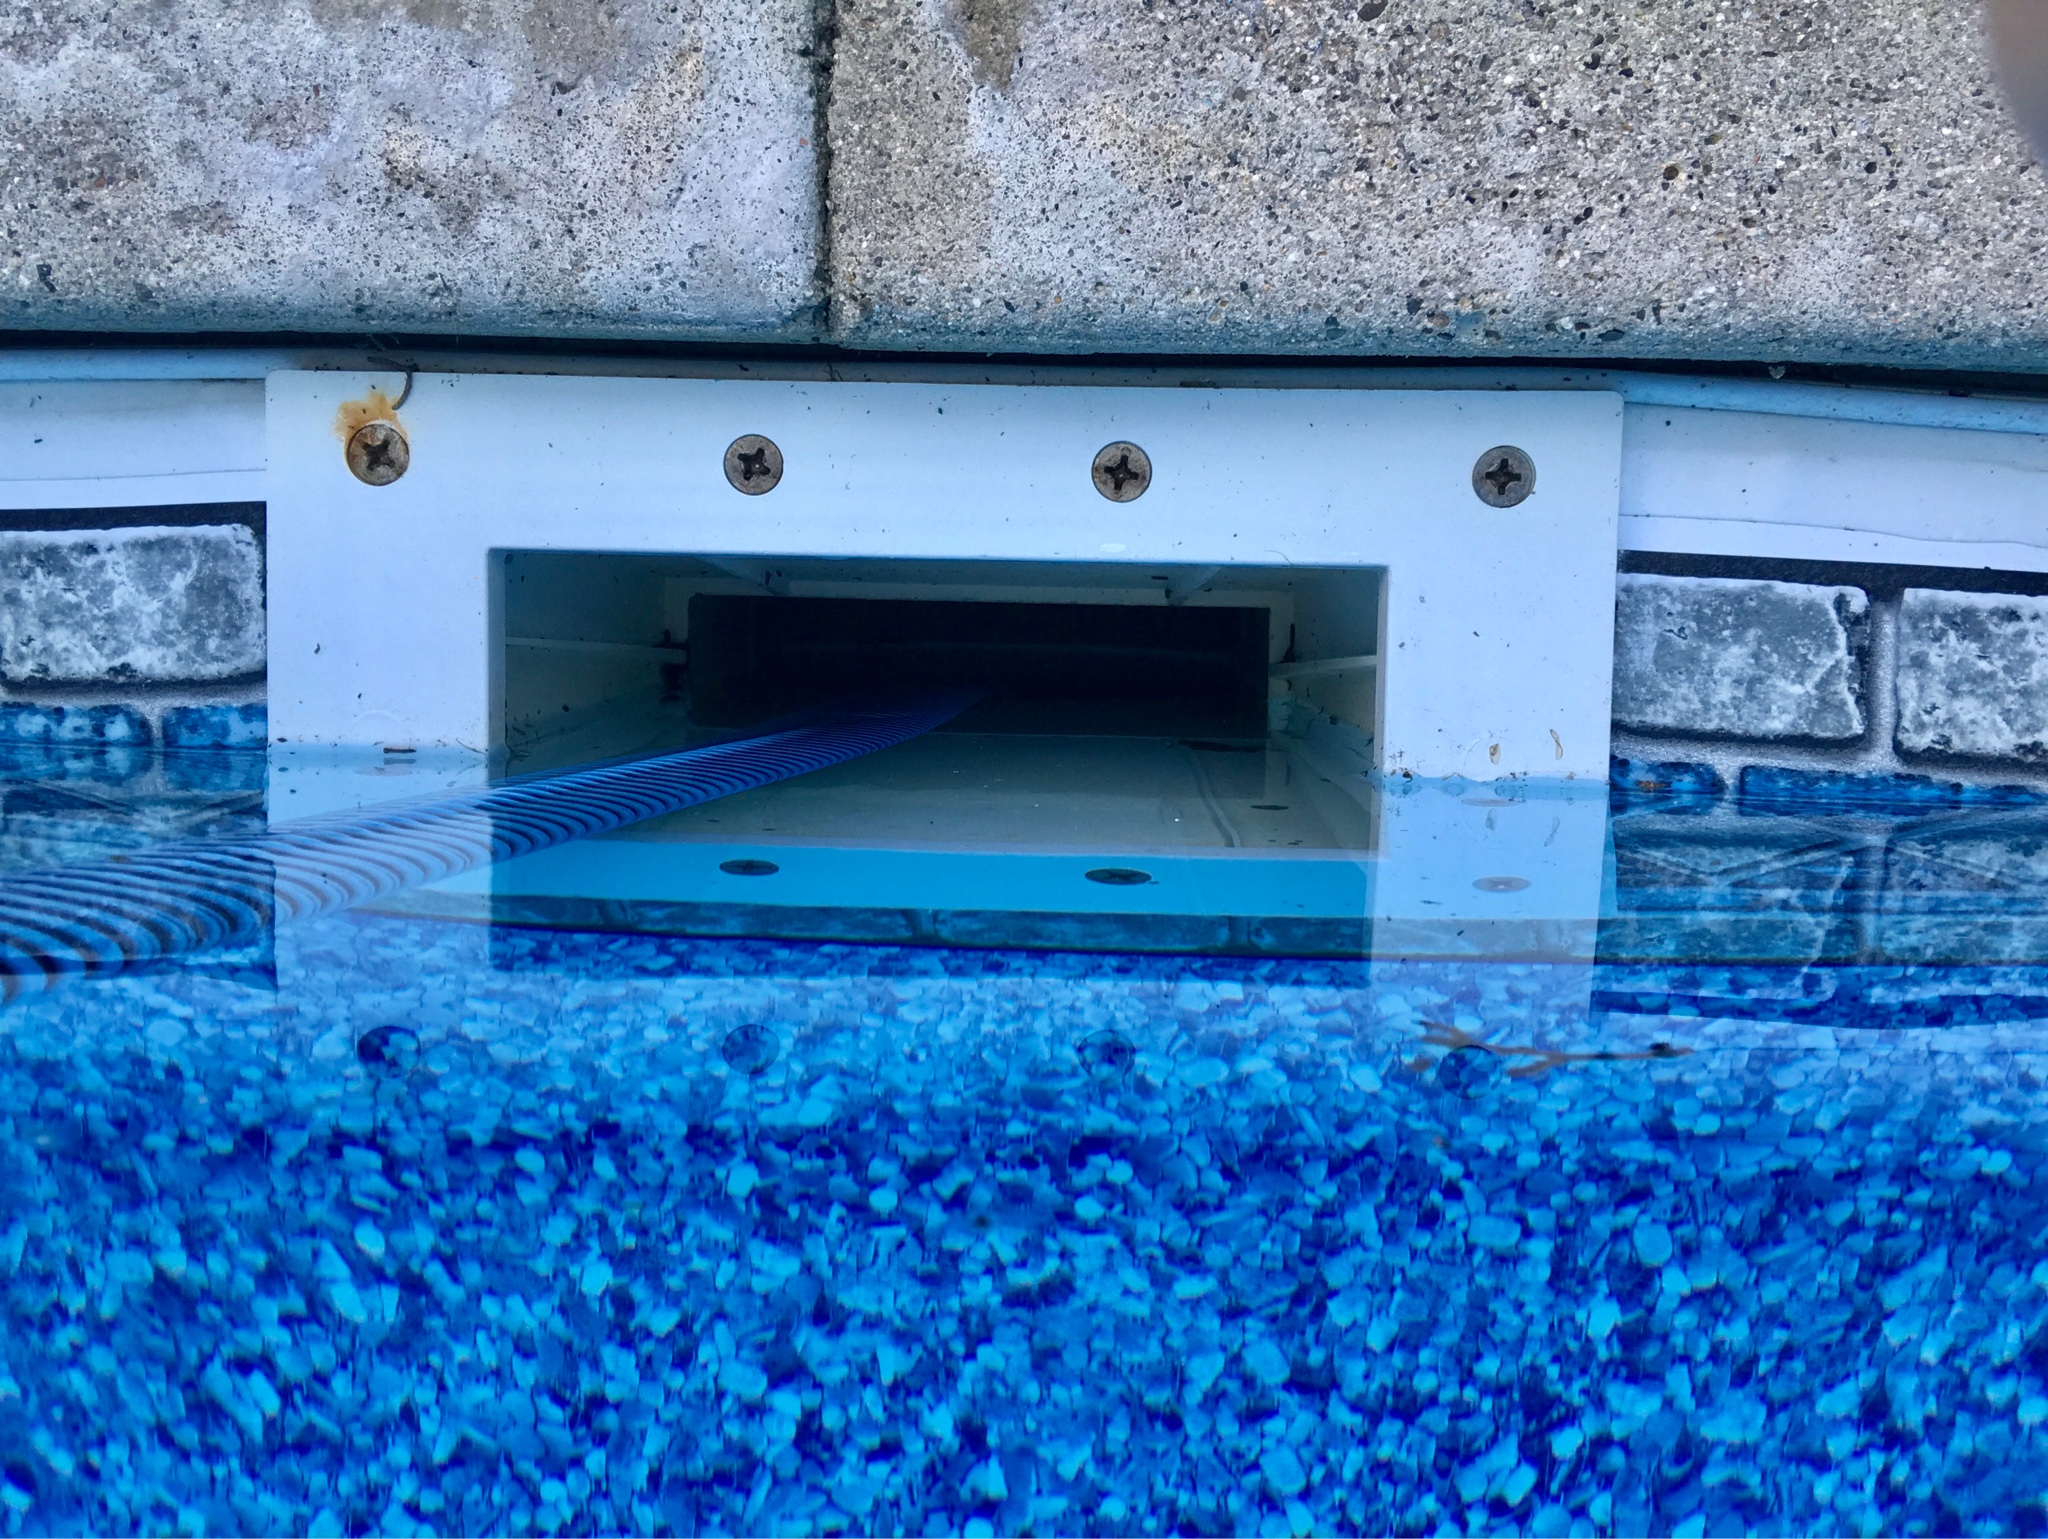 My pool is older and I can only find the part number and a logo on the skimmer. It seems the skimmer would be a lot more effective with a weir door . & Do you mind helping me identify my skimmer? I donu0027t have a weir door ...